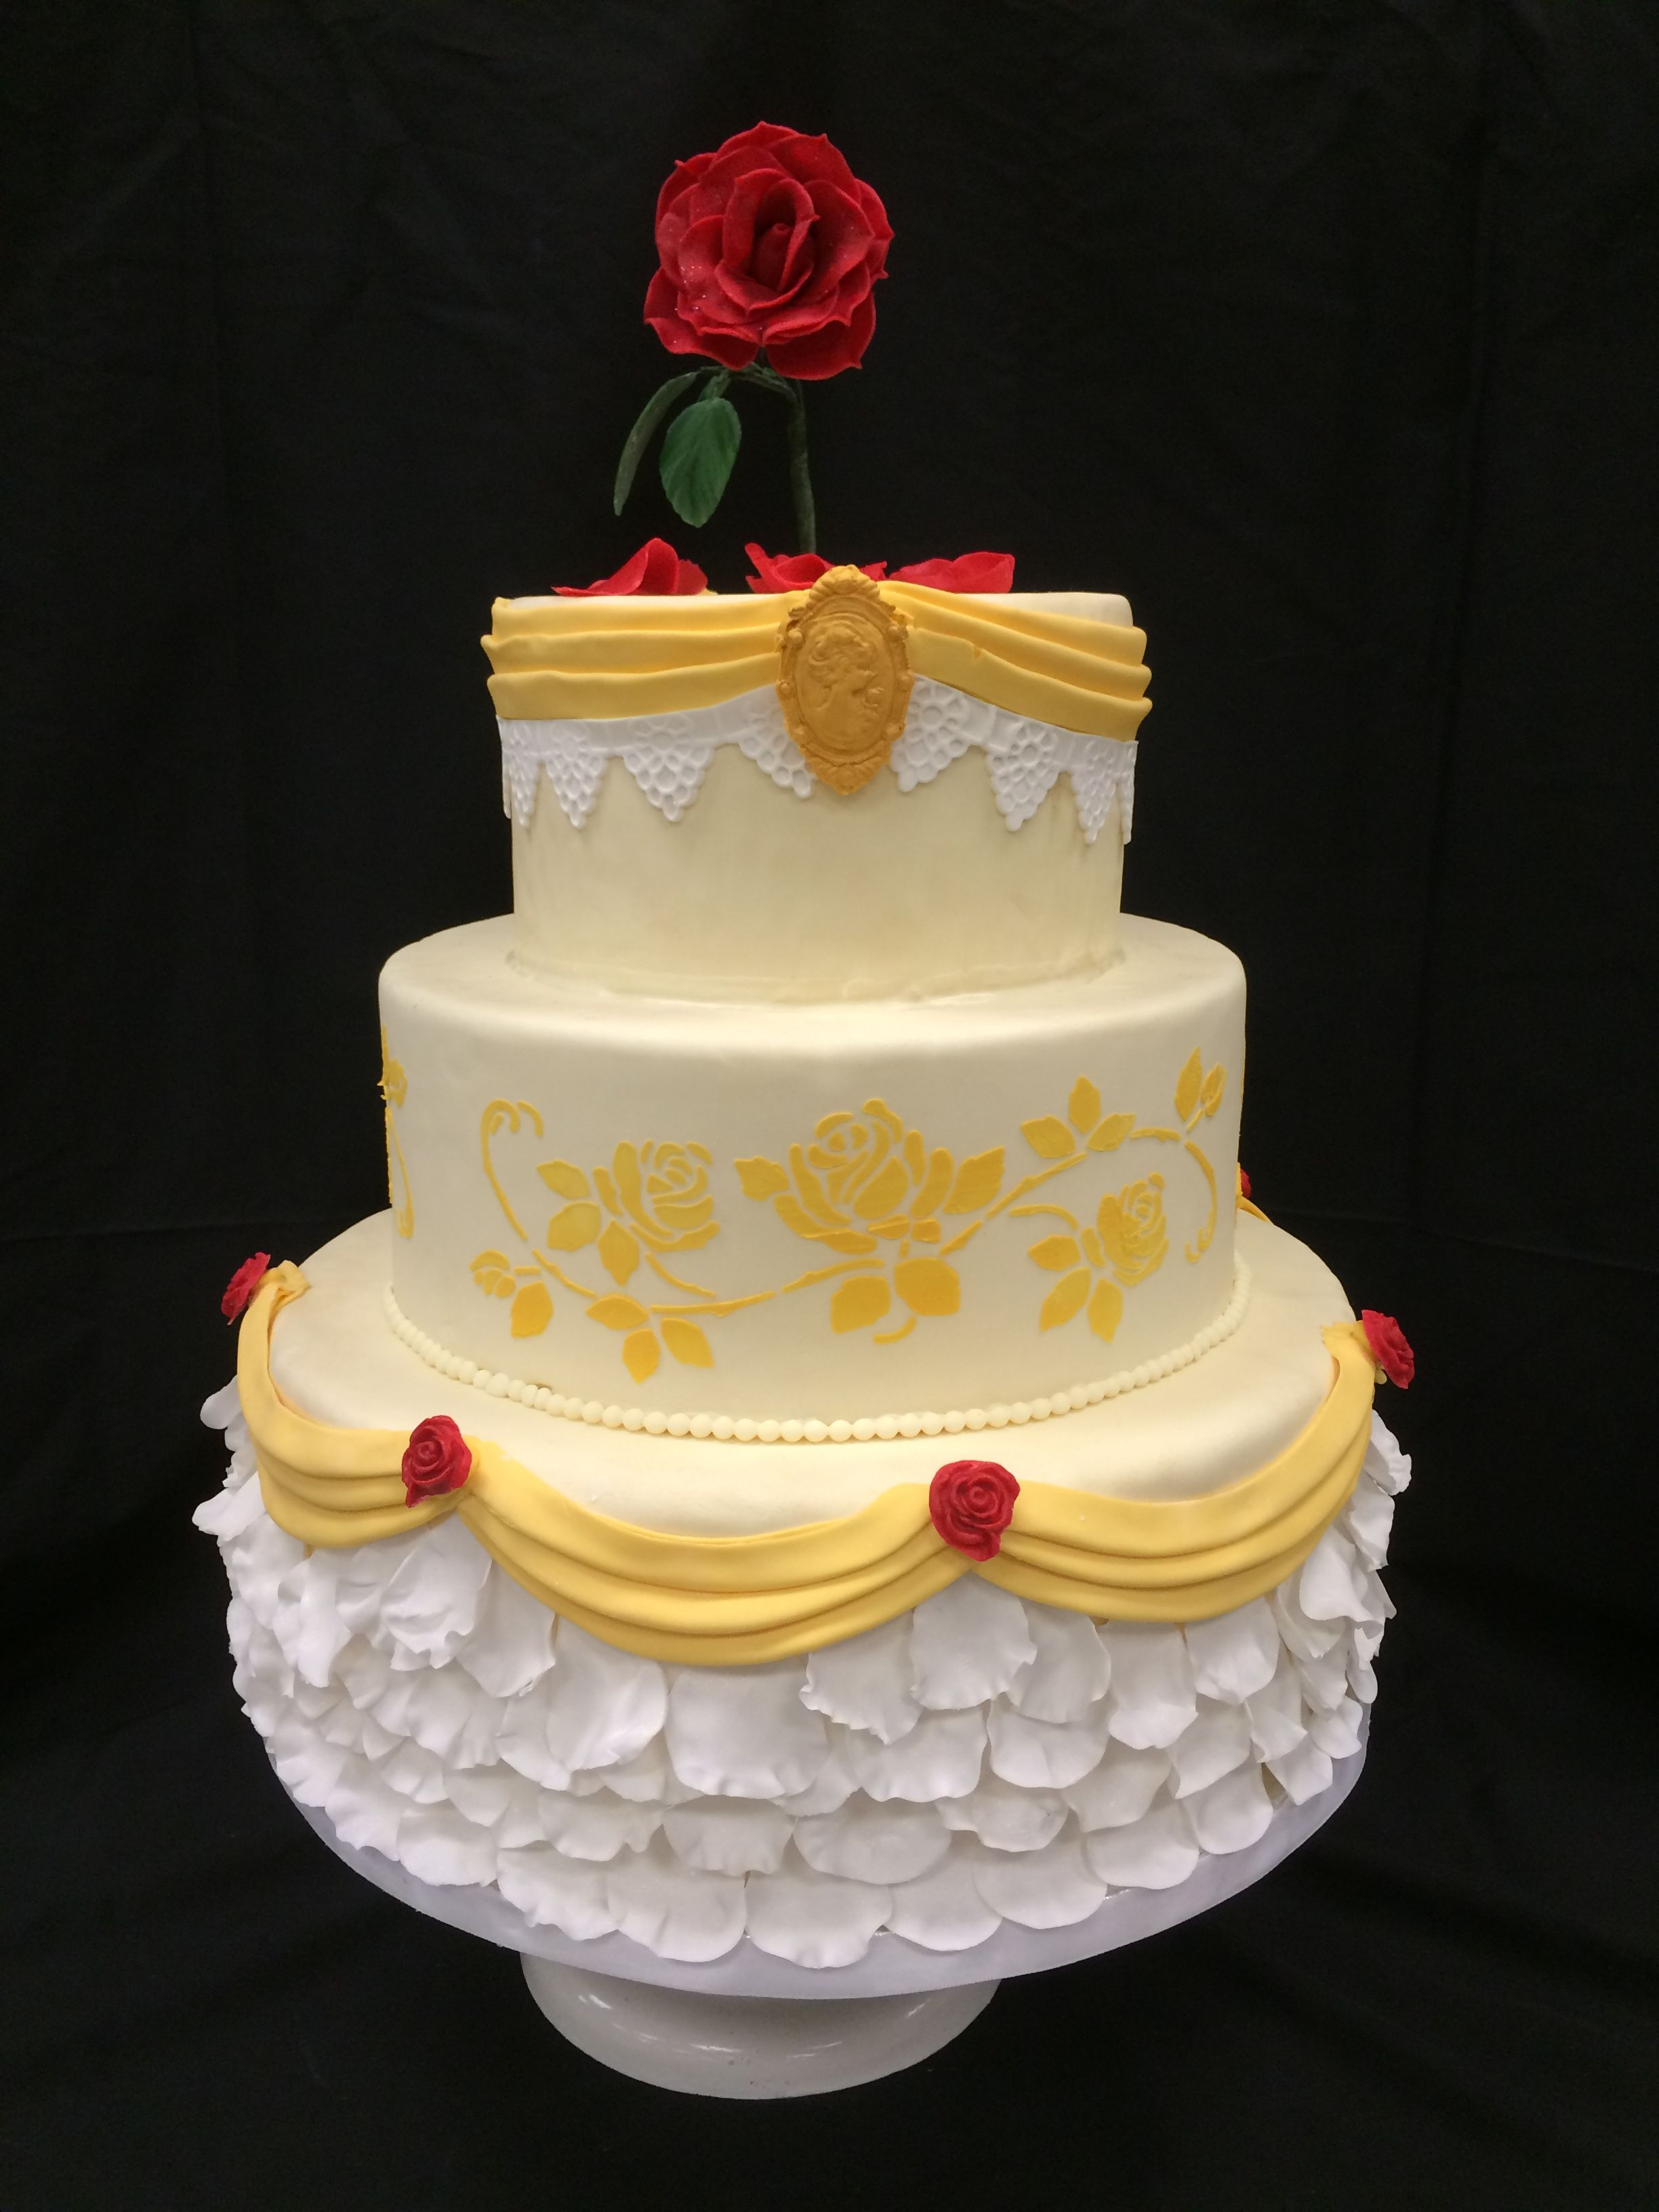 Beauty and the Beast wedding cake | Too pretty to eat | Pinterest ...